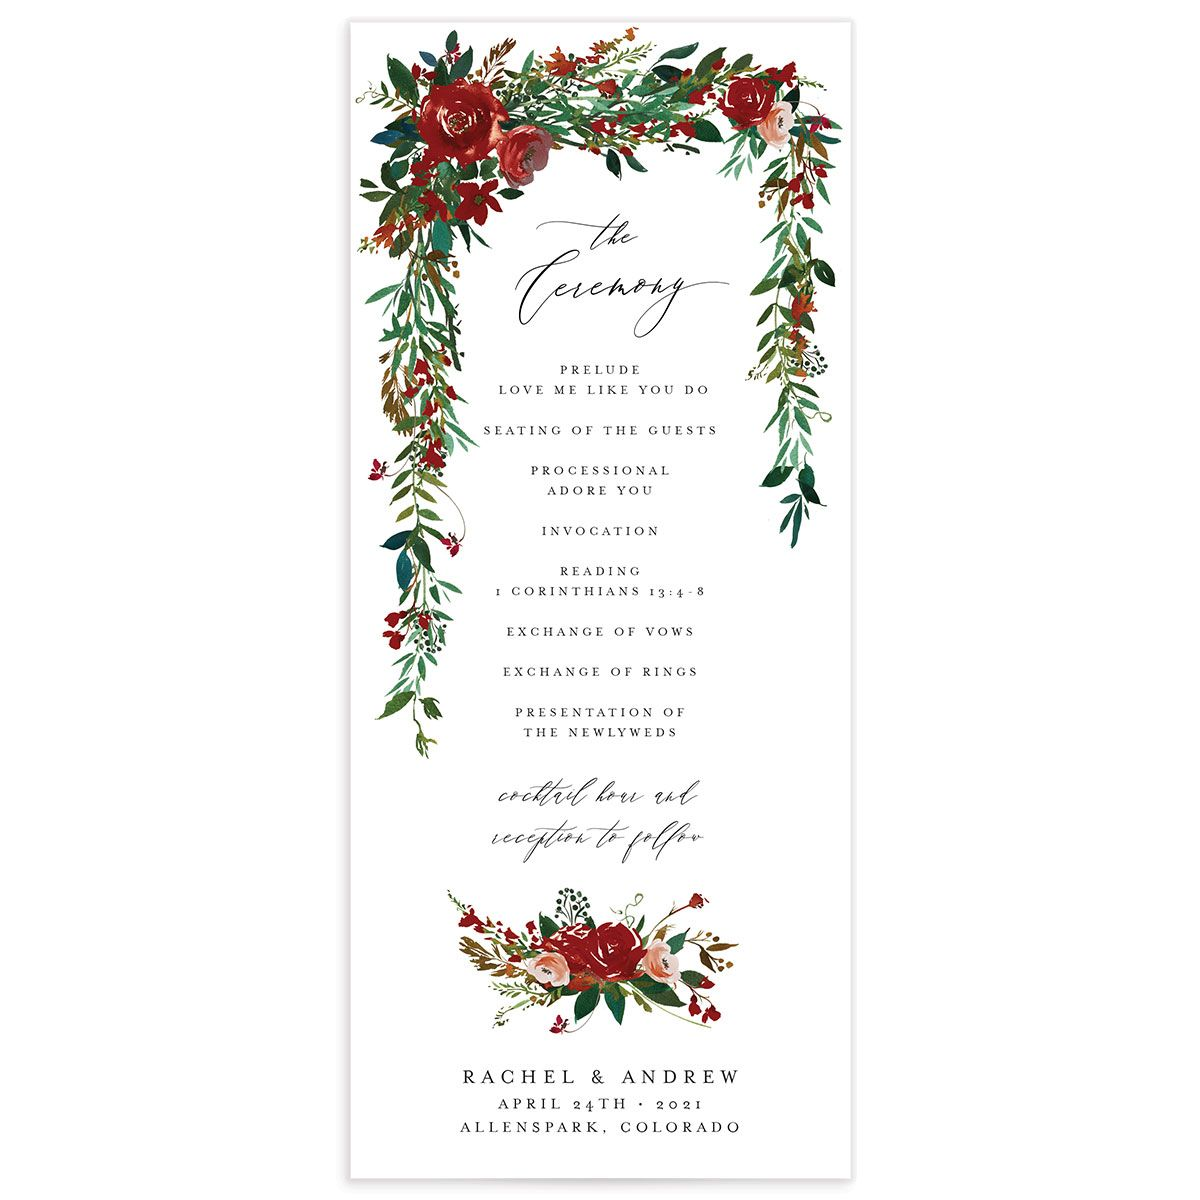 Cascading Altar wedding programs in burgundy